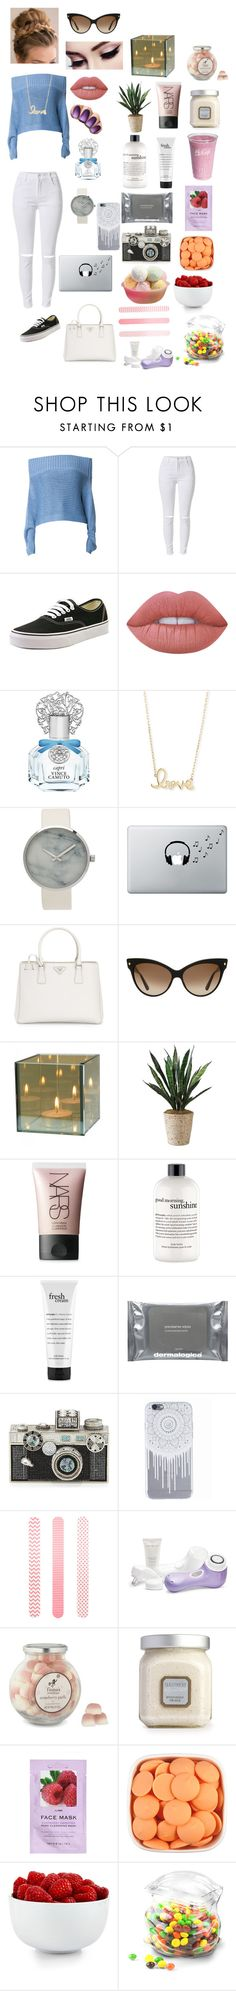 """Untitled #110"" by michelle-martinez890 on Polyvore featuring TIBI, Vans, Lime Crime, Vince Camuto, Sydney Evan, Music Notes, Prada, Christian Dior, CO and NARS Cosmetics"